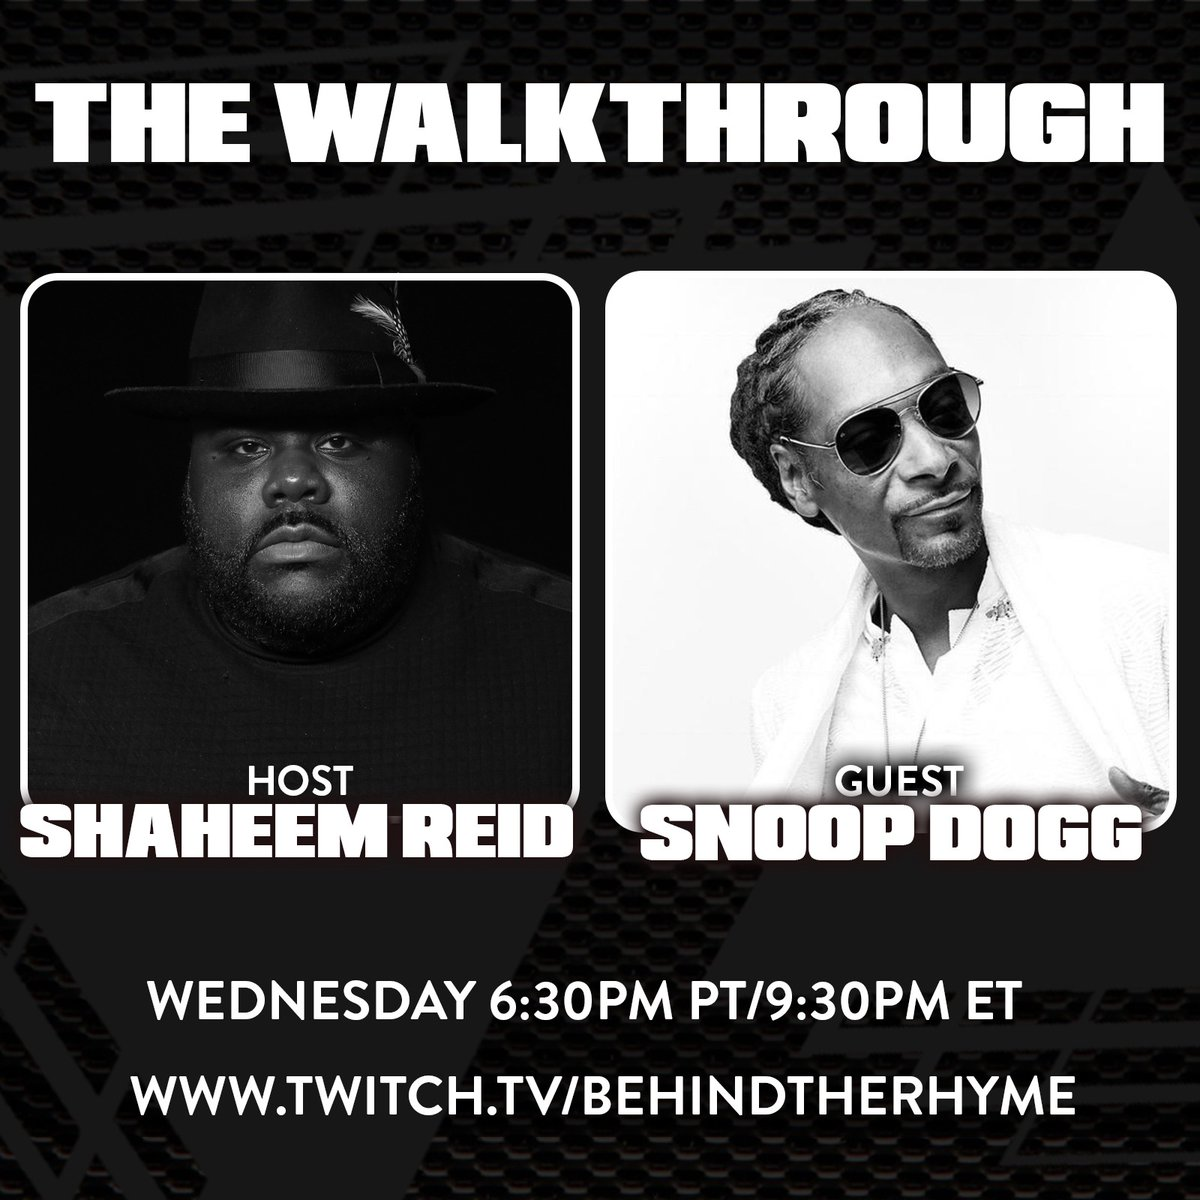 Tonight, @SnoopDogg takes #TheWalkthrough with @ShaheemReid. Jump into the chat to take part in the conversation with an icon. Live on @Twitch at 9:30 ET / 6:30 PT. 😤 👉https://t.co/FYLkMzic7C https://t.co/eAIQJY4Ex1